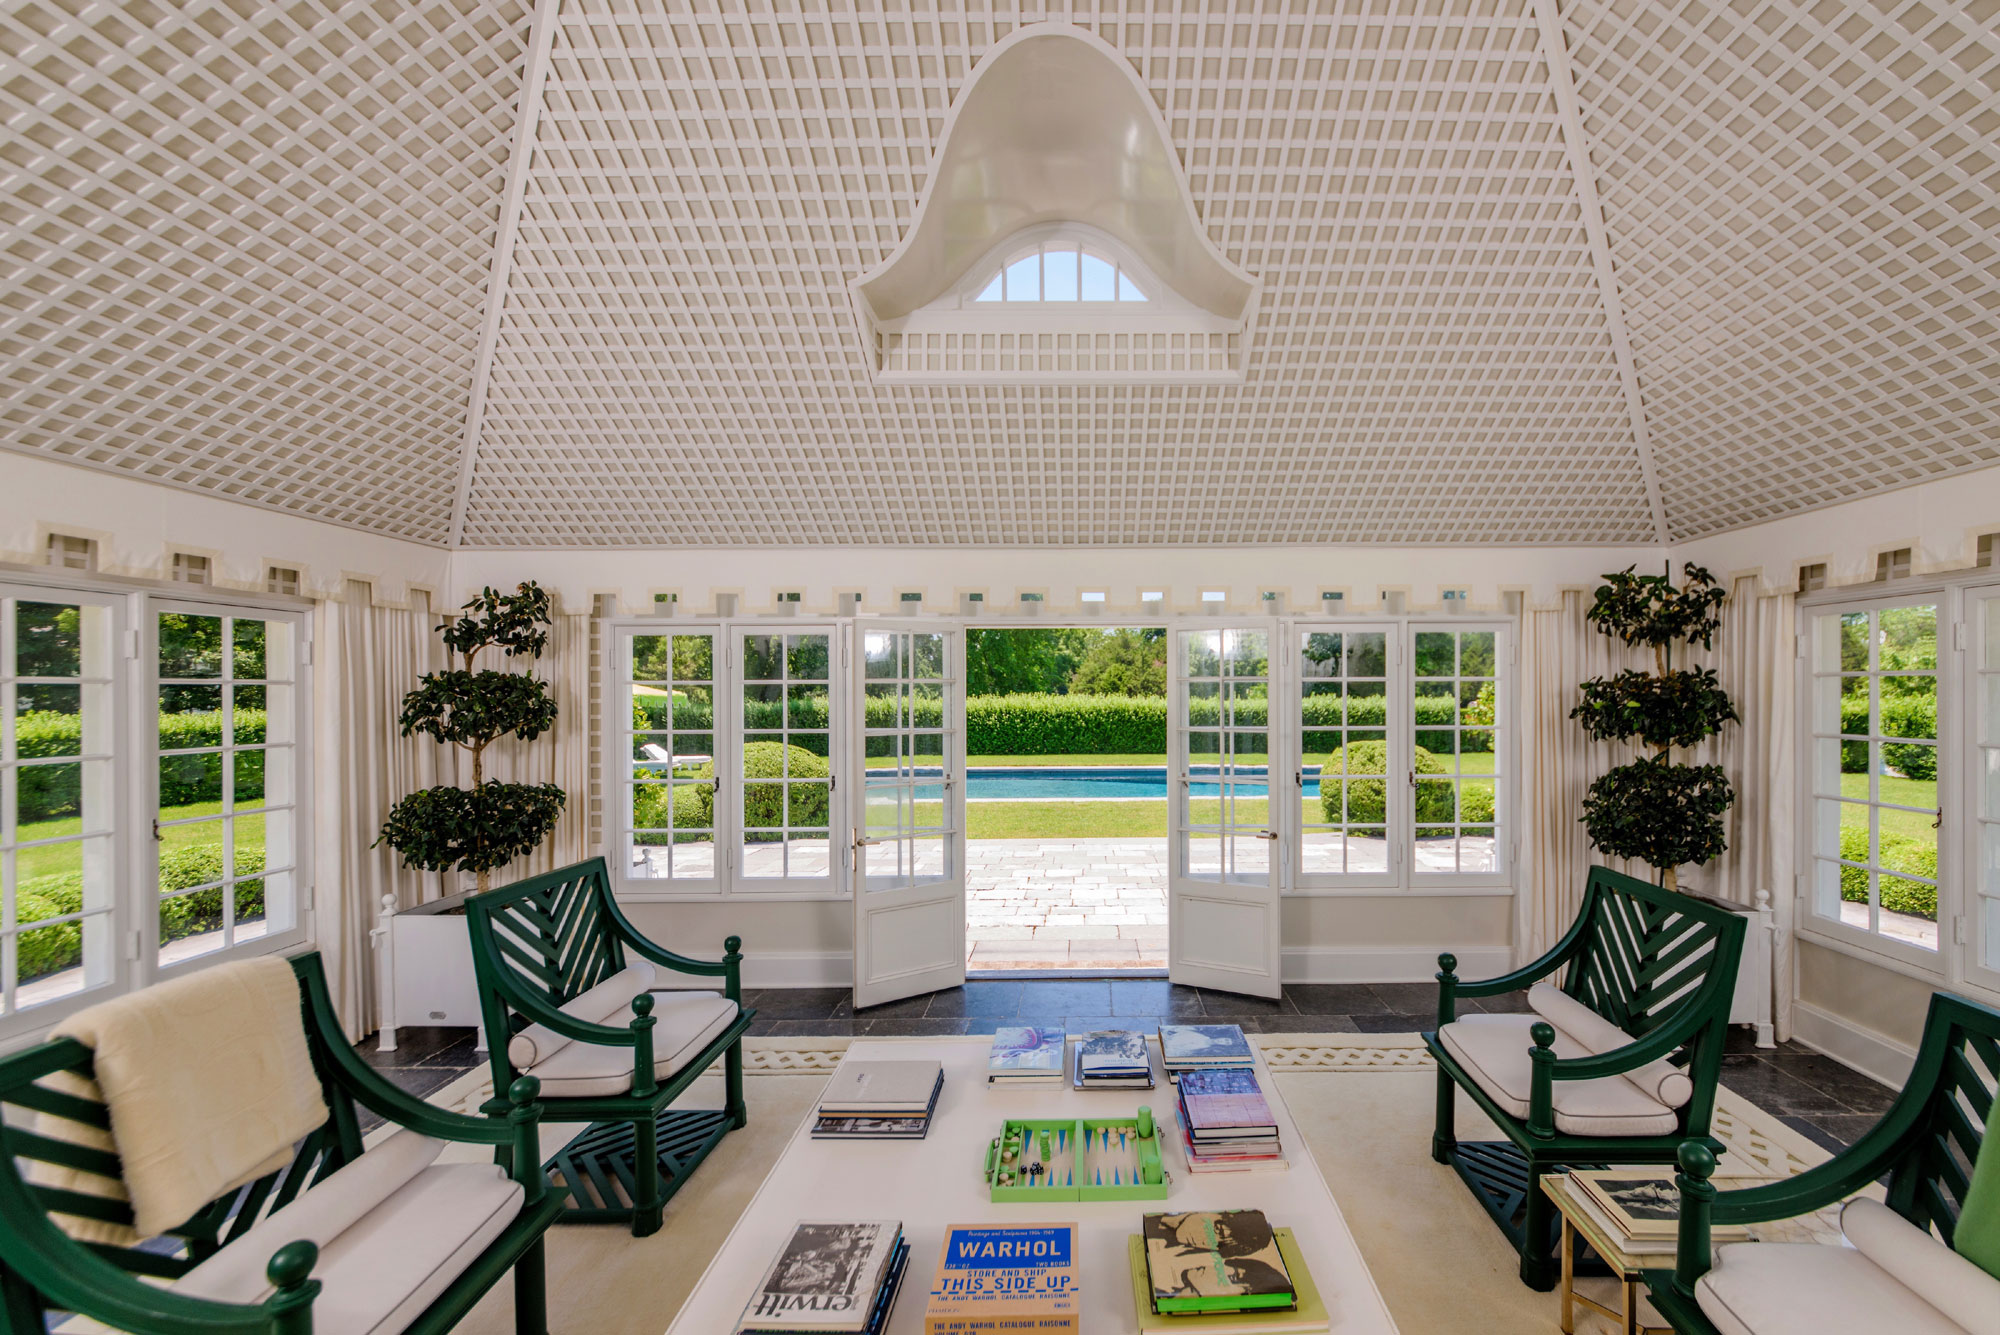 The childhood summer home of Jackie Kennedy, Lasata basks in its tranquil setting; the sunroom overlooks the idyllic grounds—the perfect space to dream of Camelot.